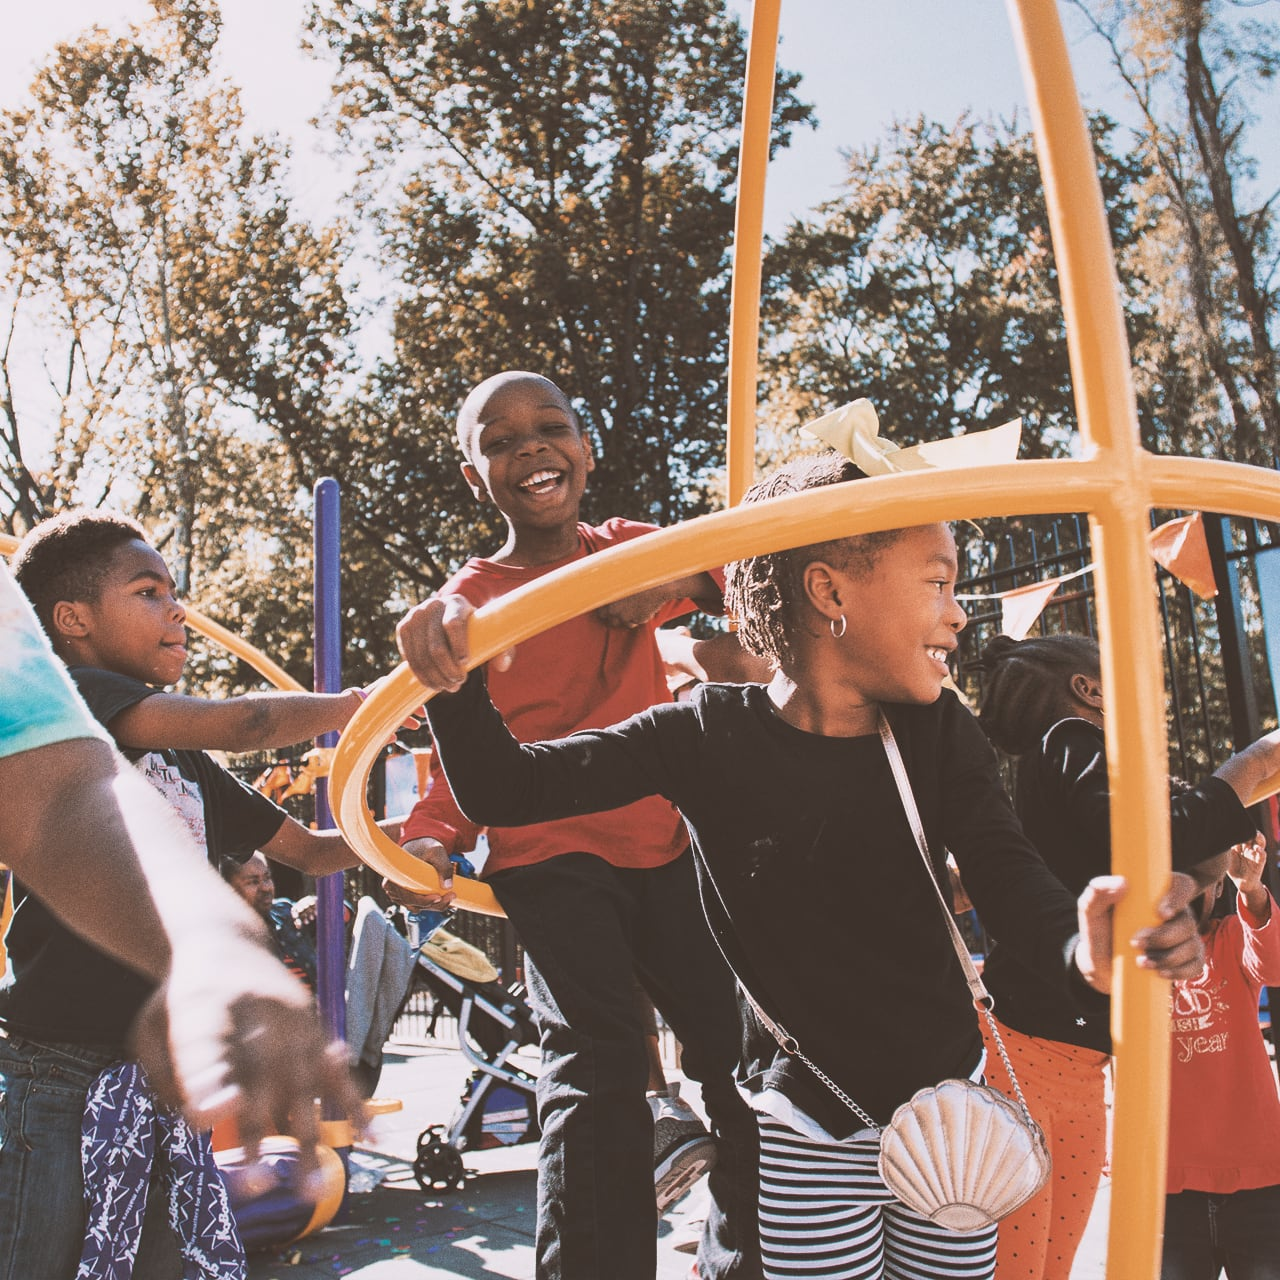 Image of children on playset.